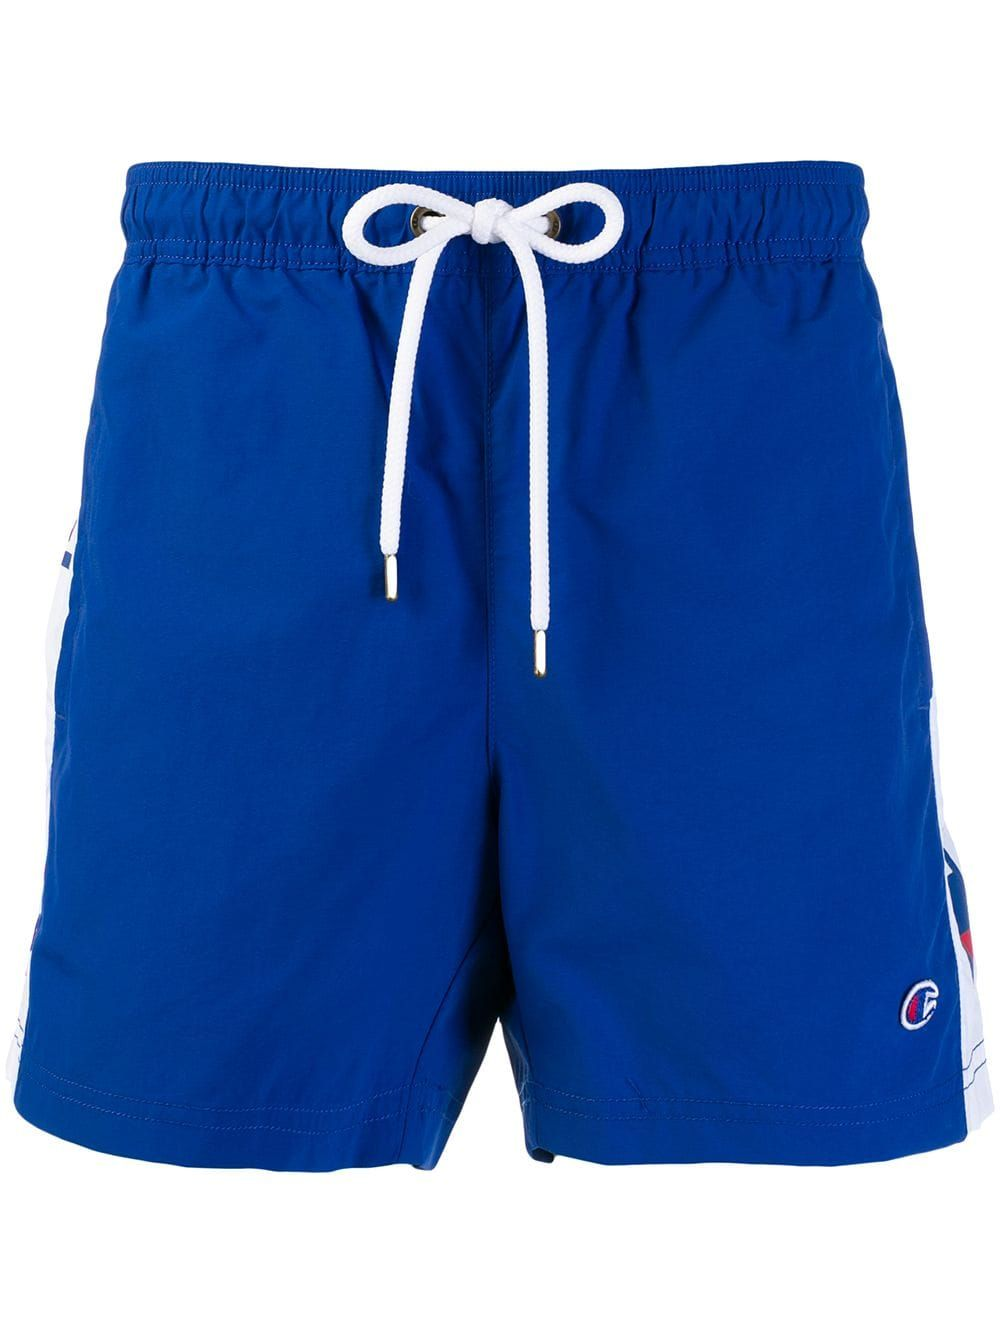 3a4197ae90 CHAMPION CHAMPION LOGO STRIPE SWIM SHORTS - BLUE. #champion #cloth ...